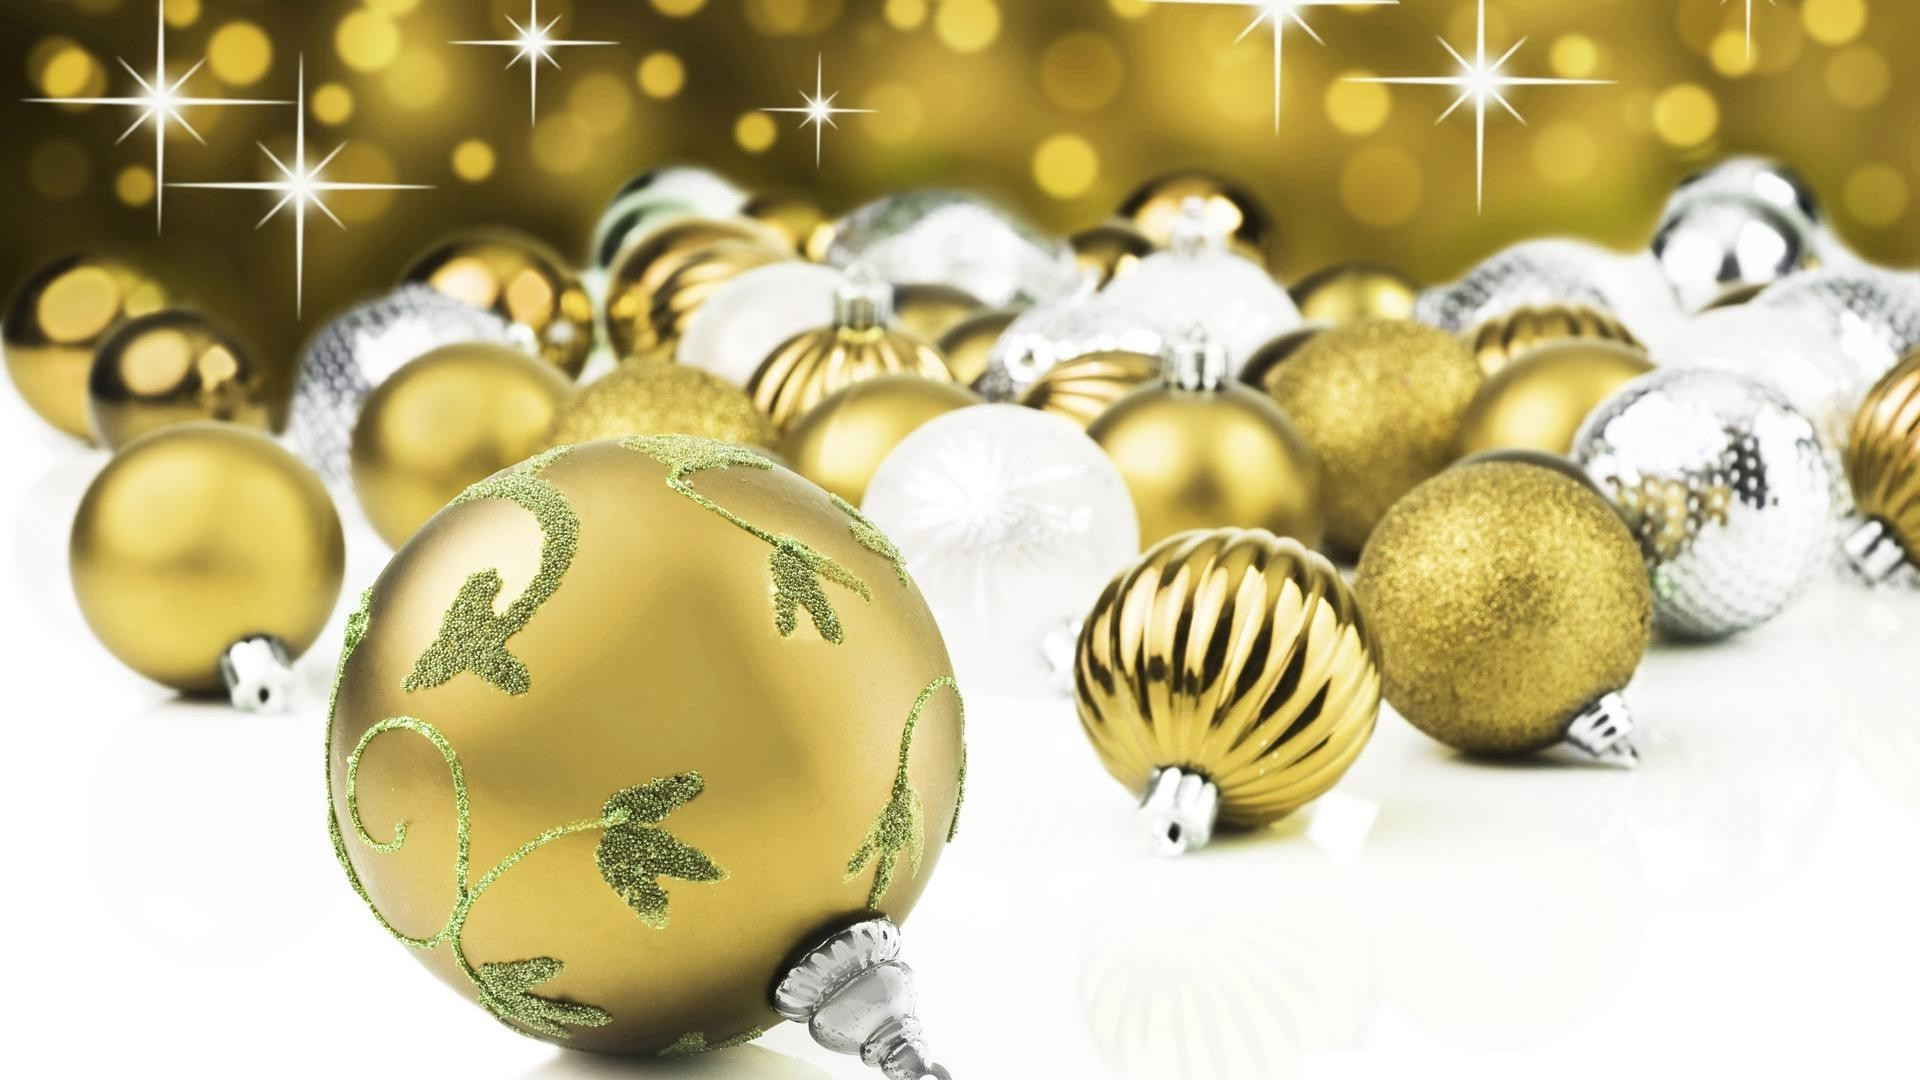 new year christmas ball sphere winter decoration shining gold bangle celebration glisten merry desktop ornate round bright traditional season